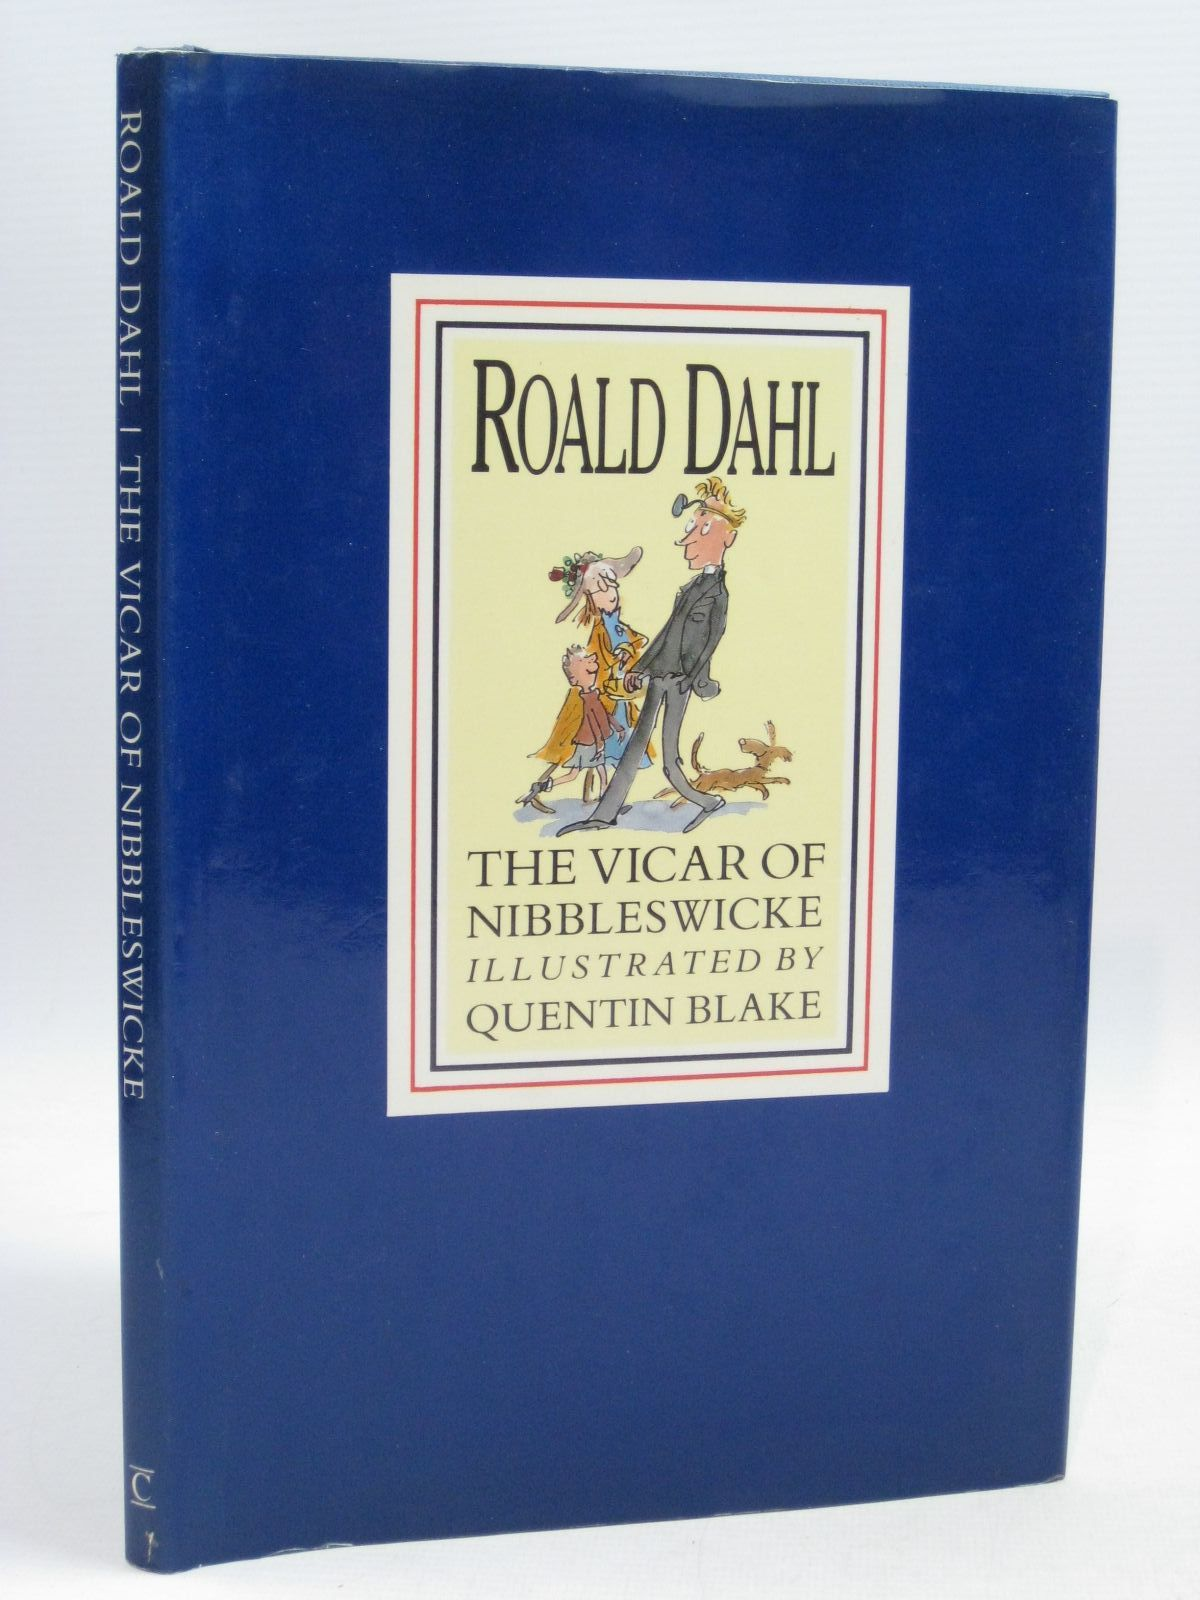 Photo of THE VICAR OF NIBBLESWICKE written by Dahl, Roald illustrated by Blake, Quentin published by Century Publishing (STOCK CODE: 1505320)  for sale by Stella & Rose's Books